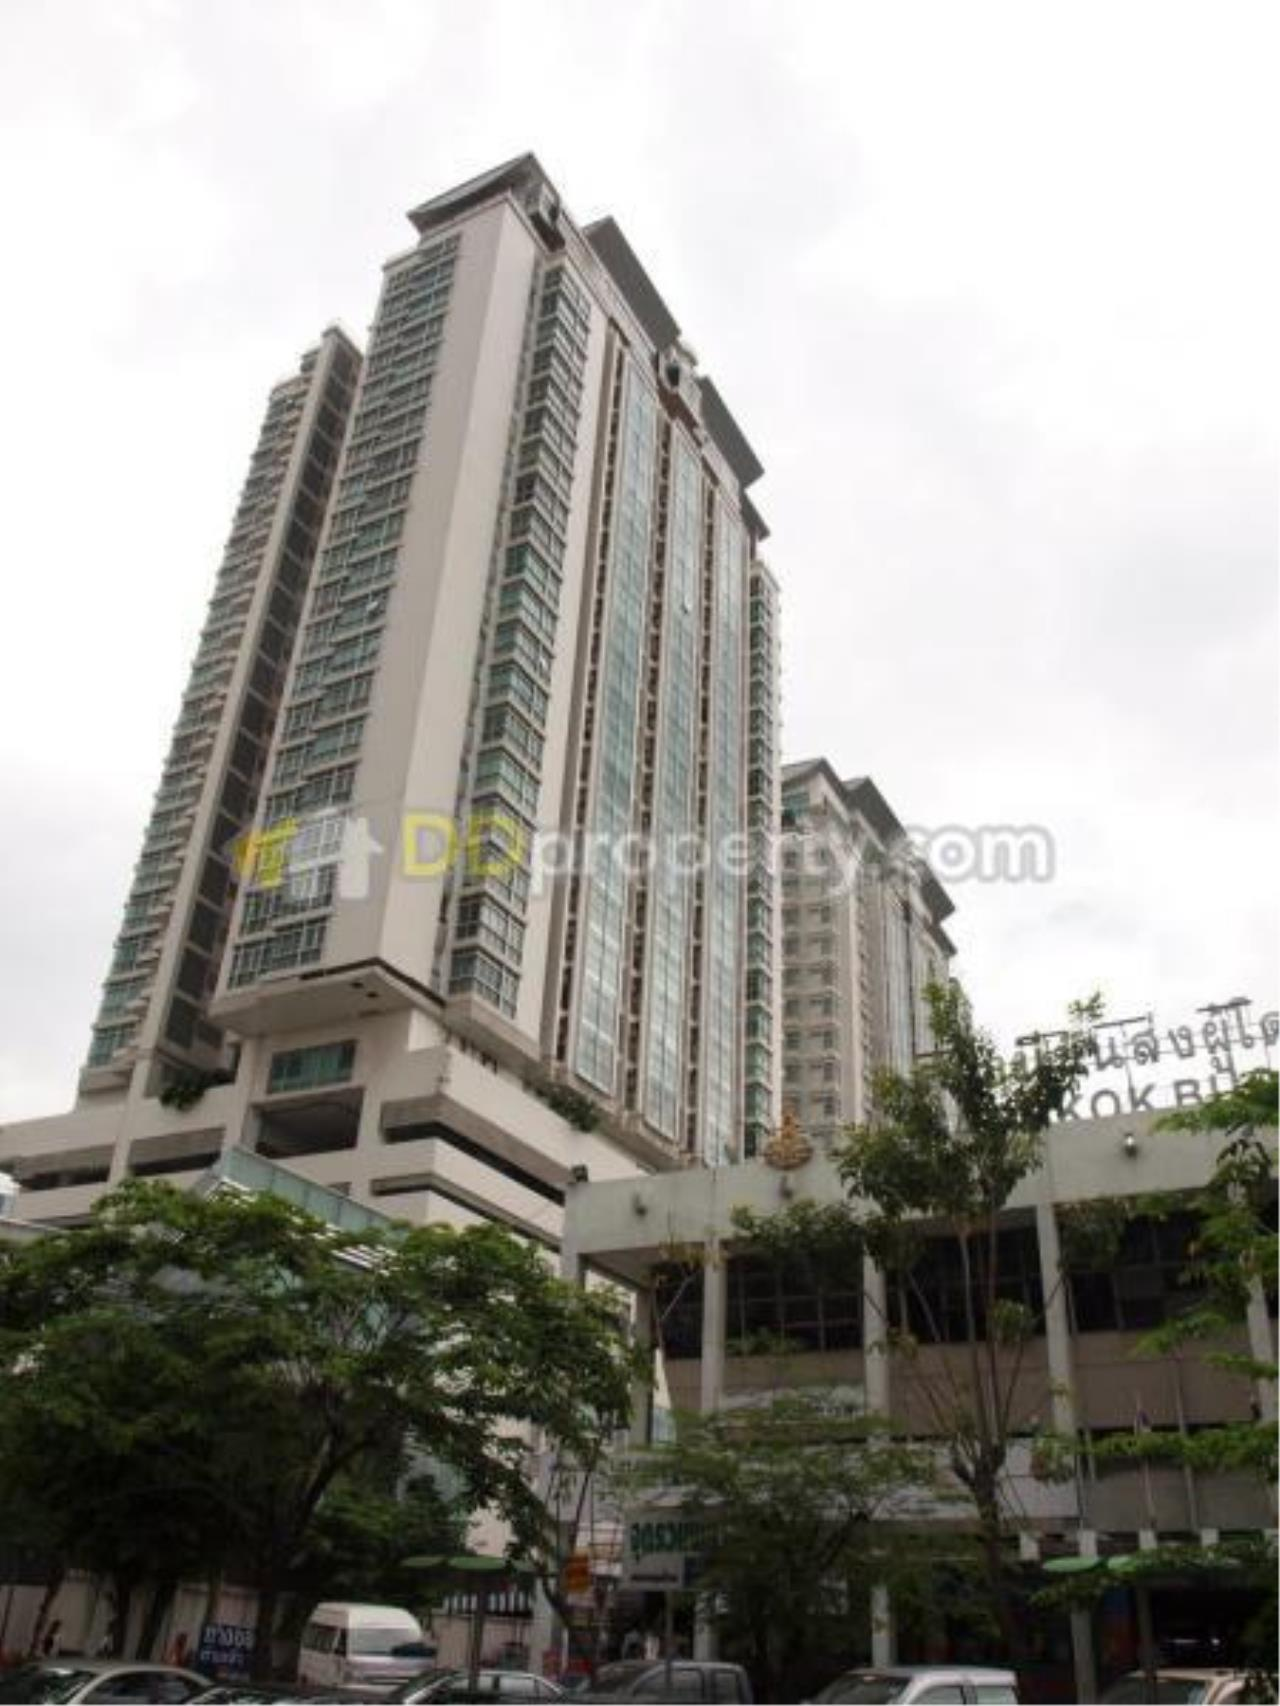 Quality Life Property Agency's SALE AND RENT ...NUSASIRI GRAND | 1 ROOM 1 BATH | 80 SQ. M. 4